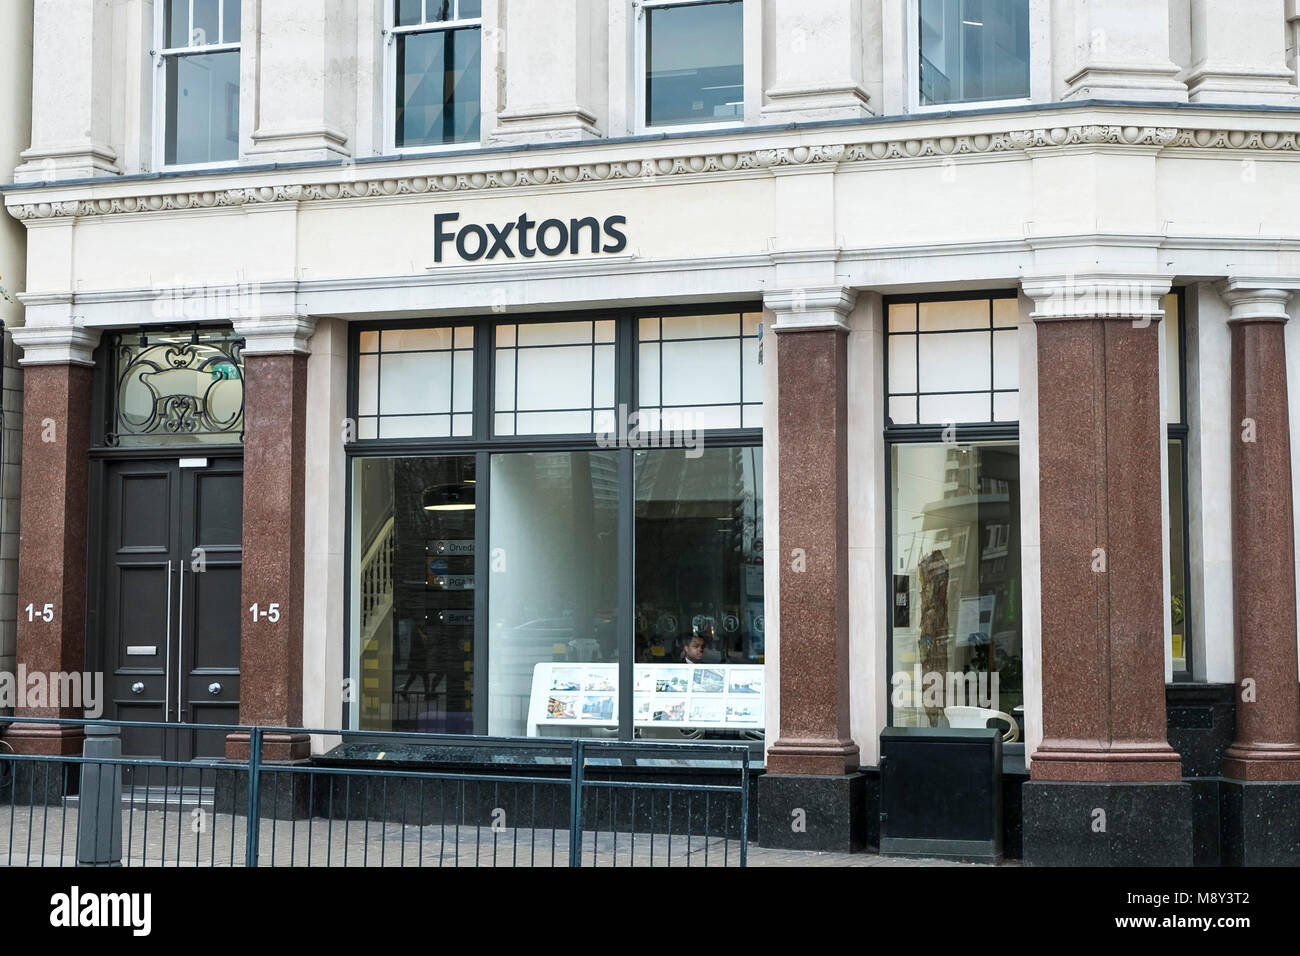 Foxtons Estate Agents in London. - Stock Image